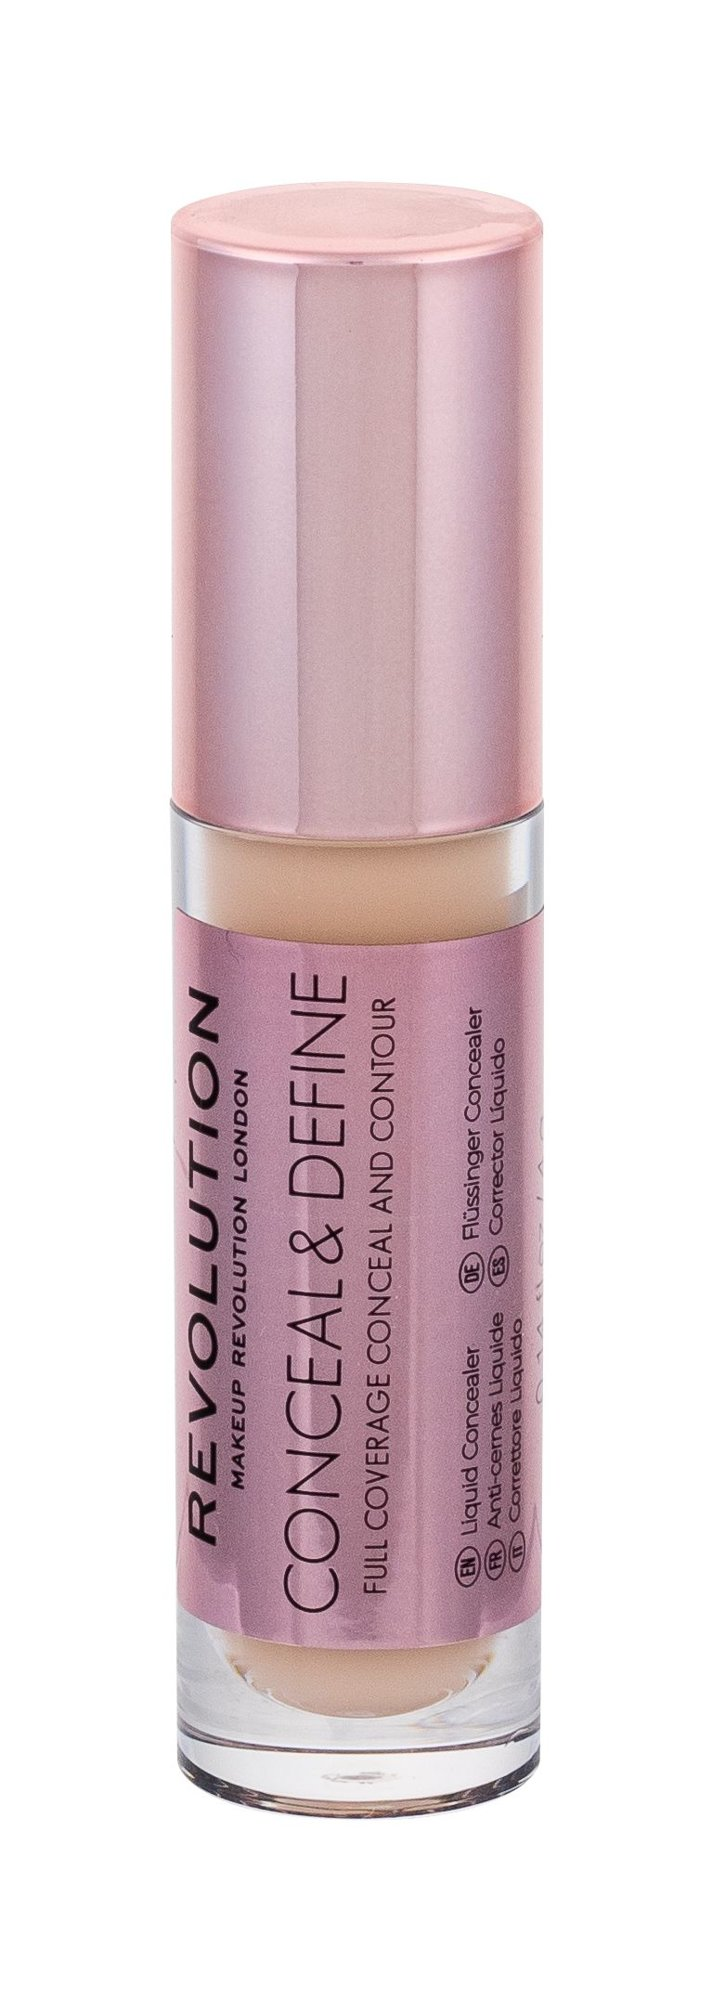 Makeup Revolution London Conceal & Define Corrector 4ml C6